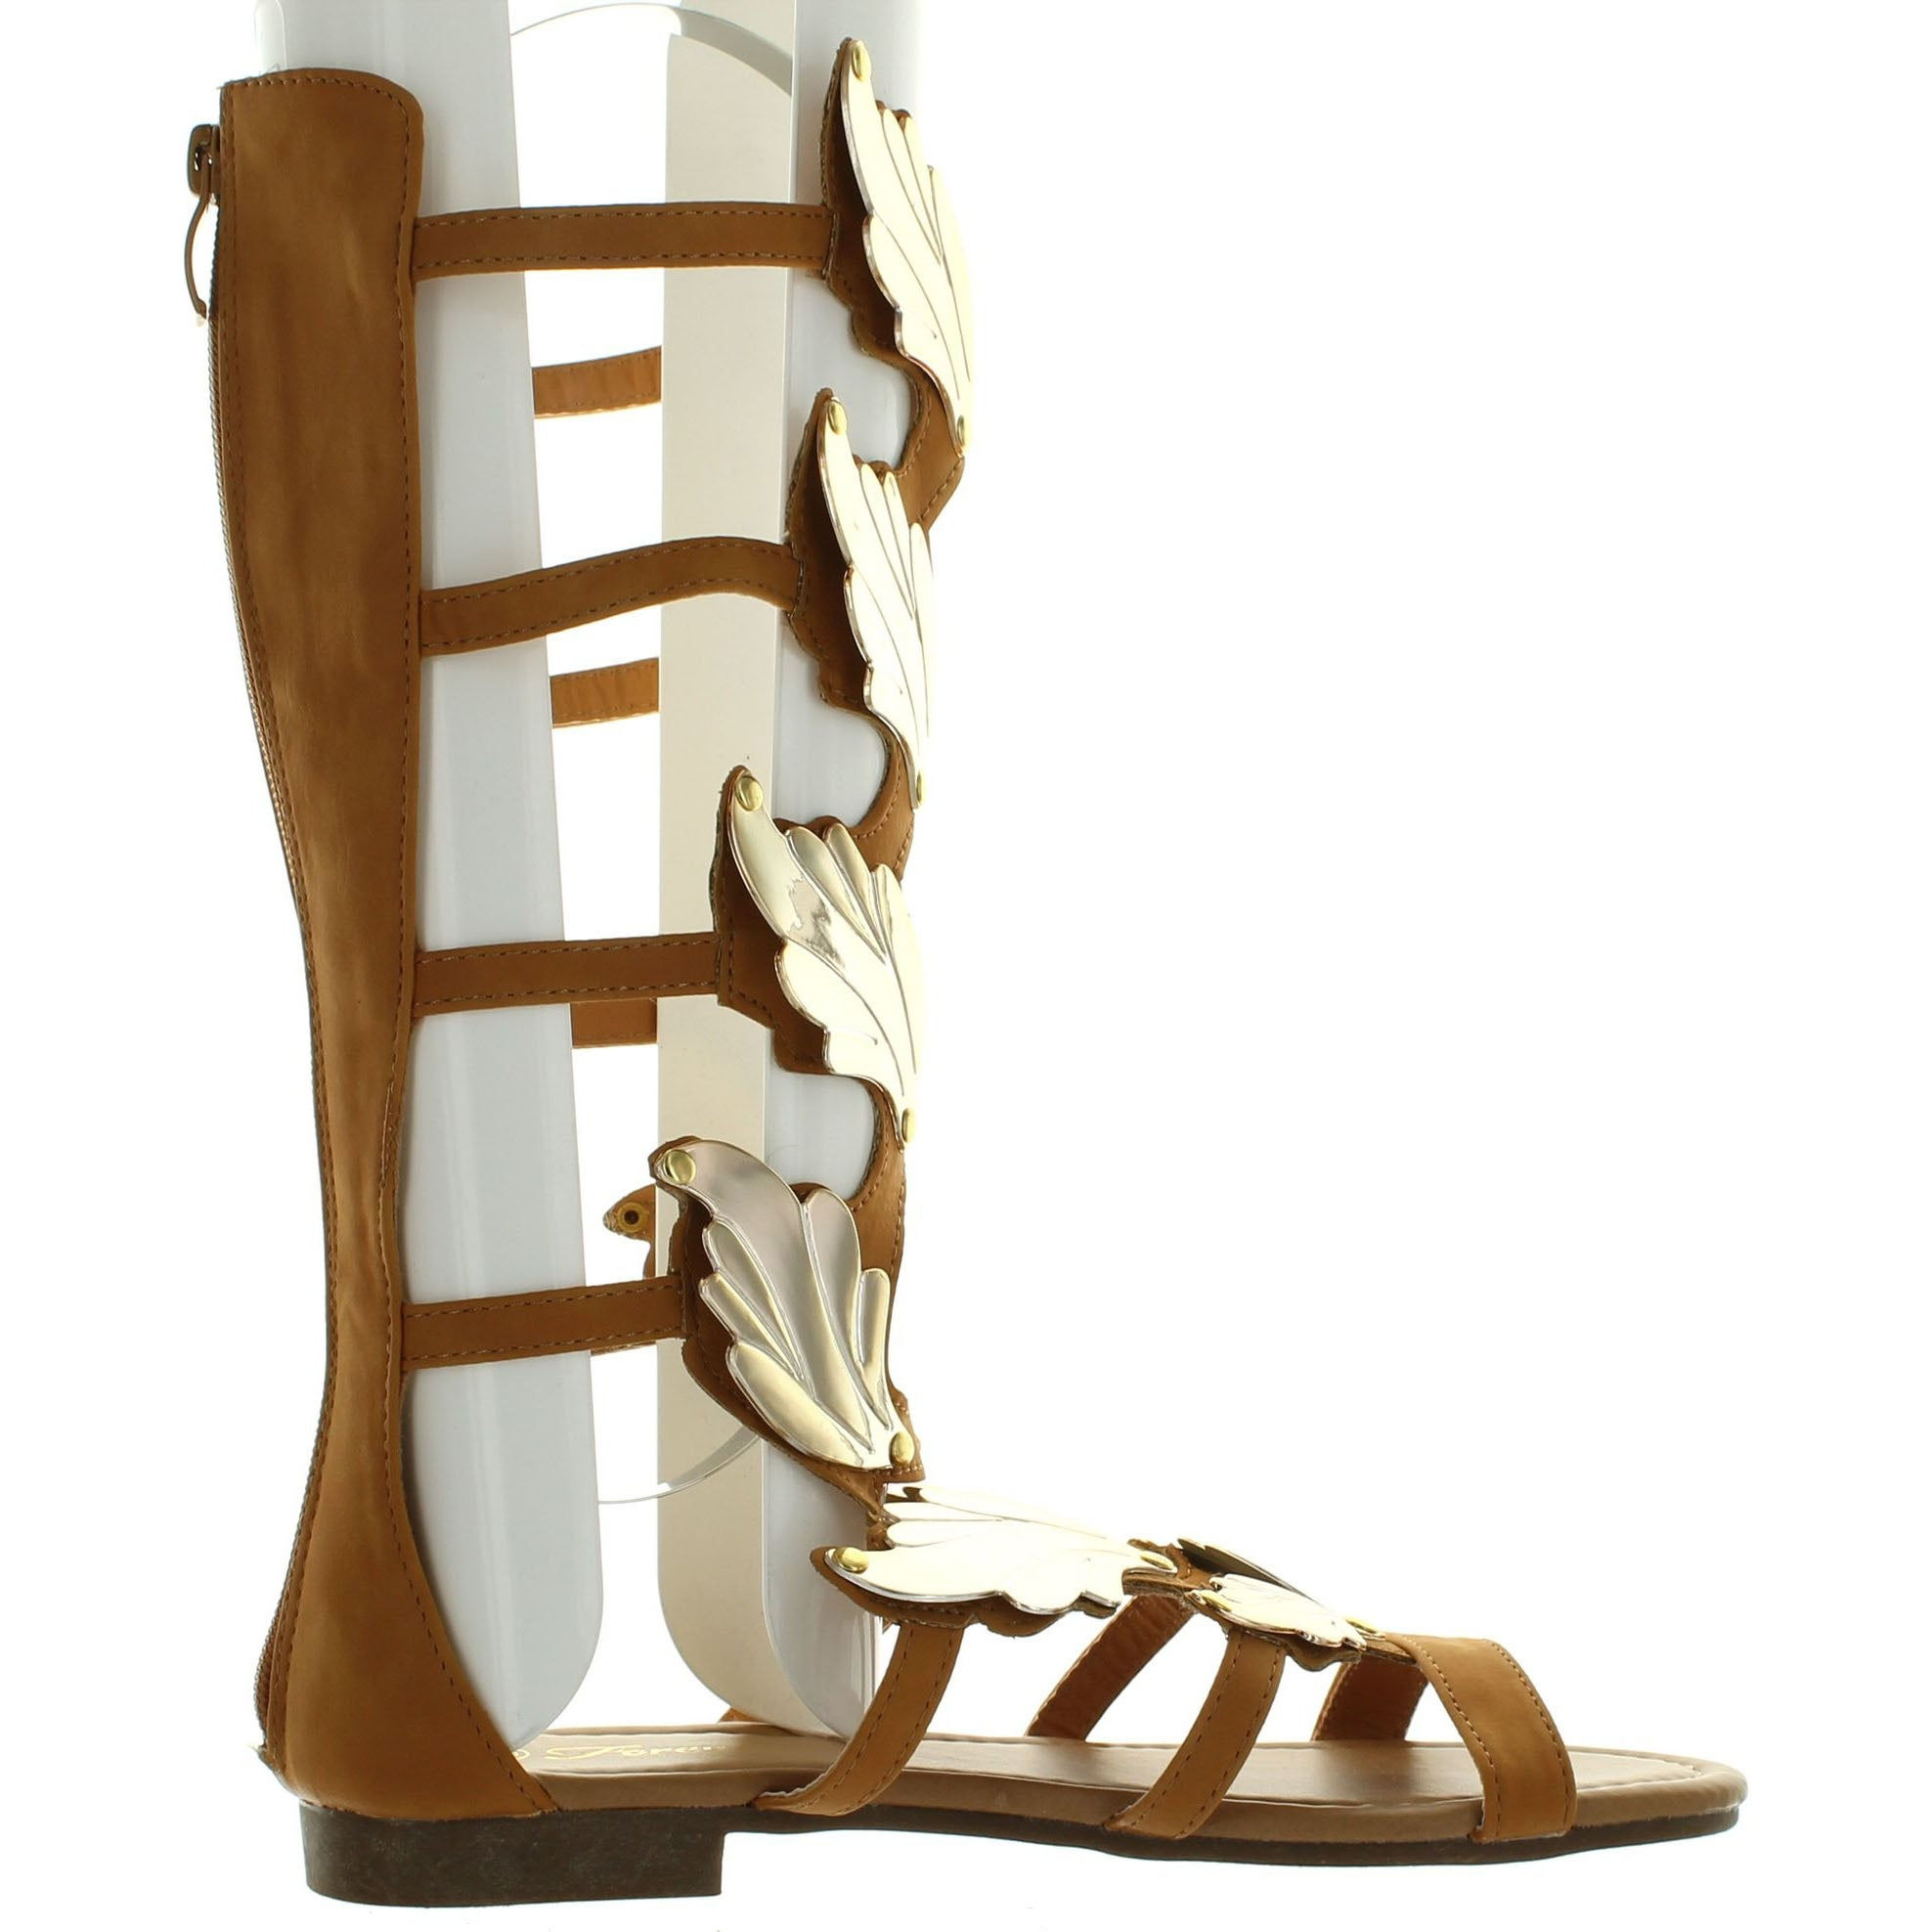 9bedc857011f Shop Forever Link Womens Kesha-72 Faux Nubuck Winged Gladiator Fashion  Sandals - Free Shipping On Orders Over  45 - Overstock - 14397593